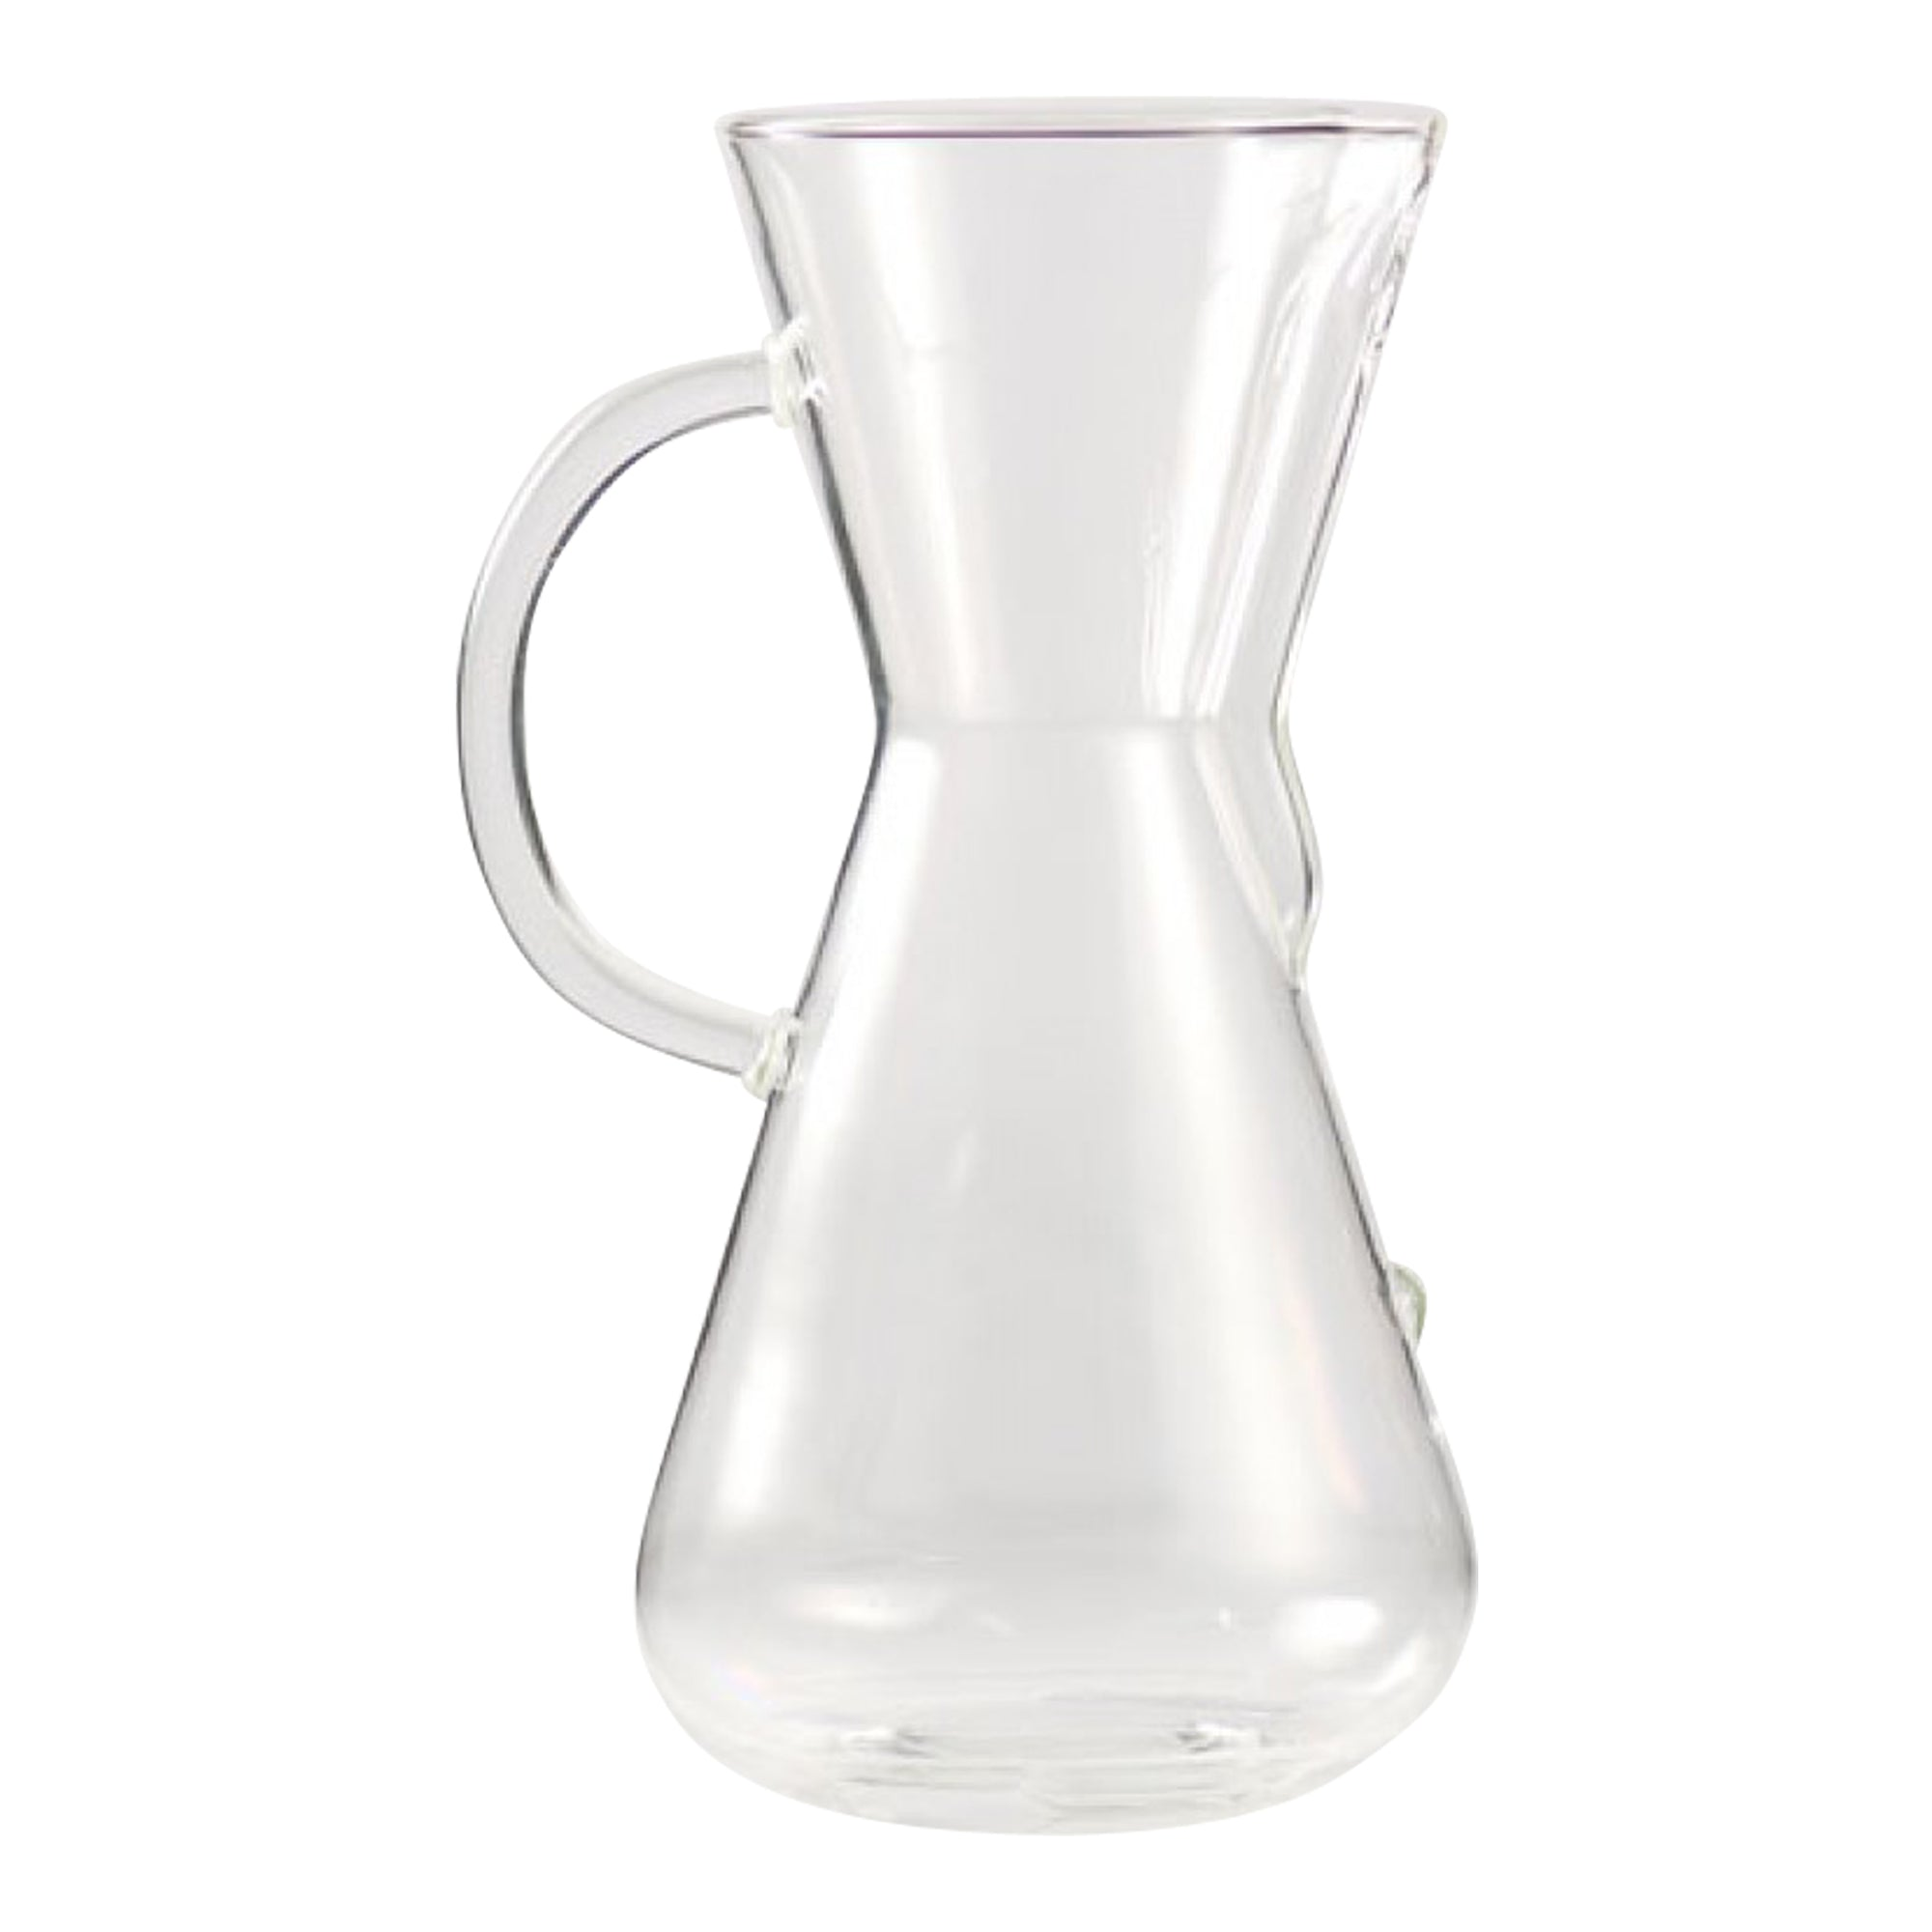 3-cup glass - Chemex - Espresso Gear